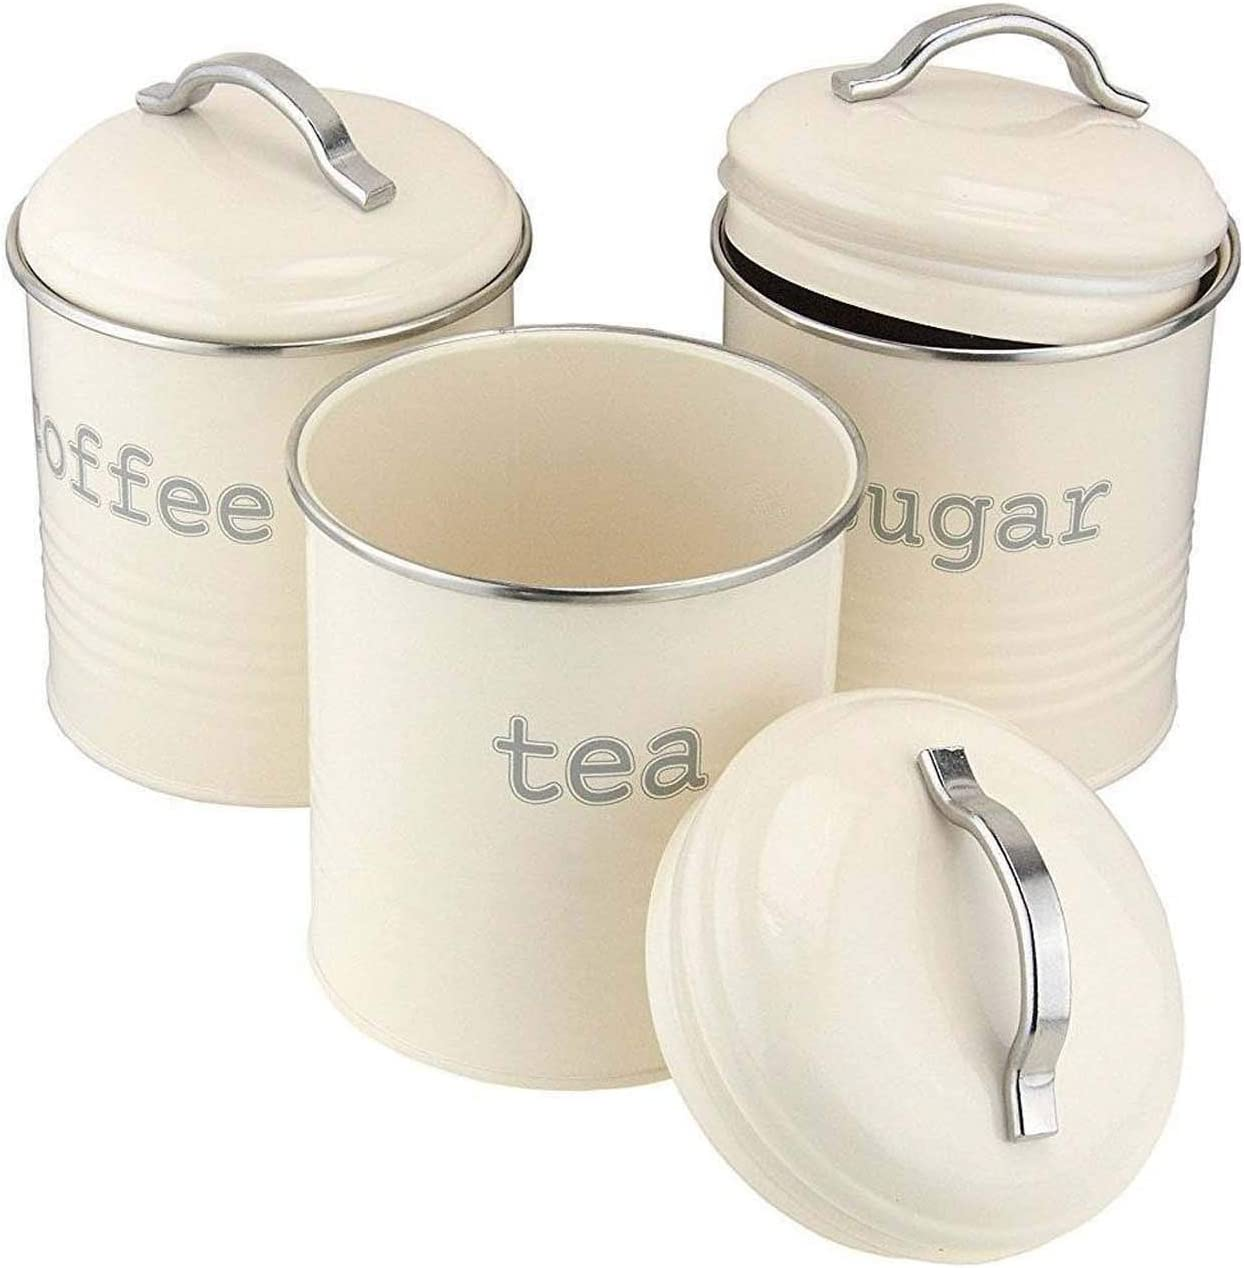 Retro Vintage Cream Enamel Round Set of 3 Tea Coffee Sugar Storage Canister Tin